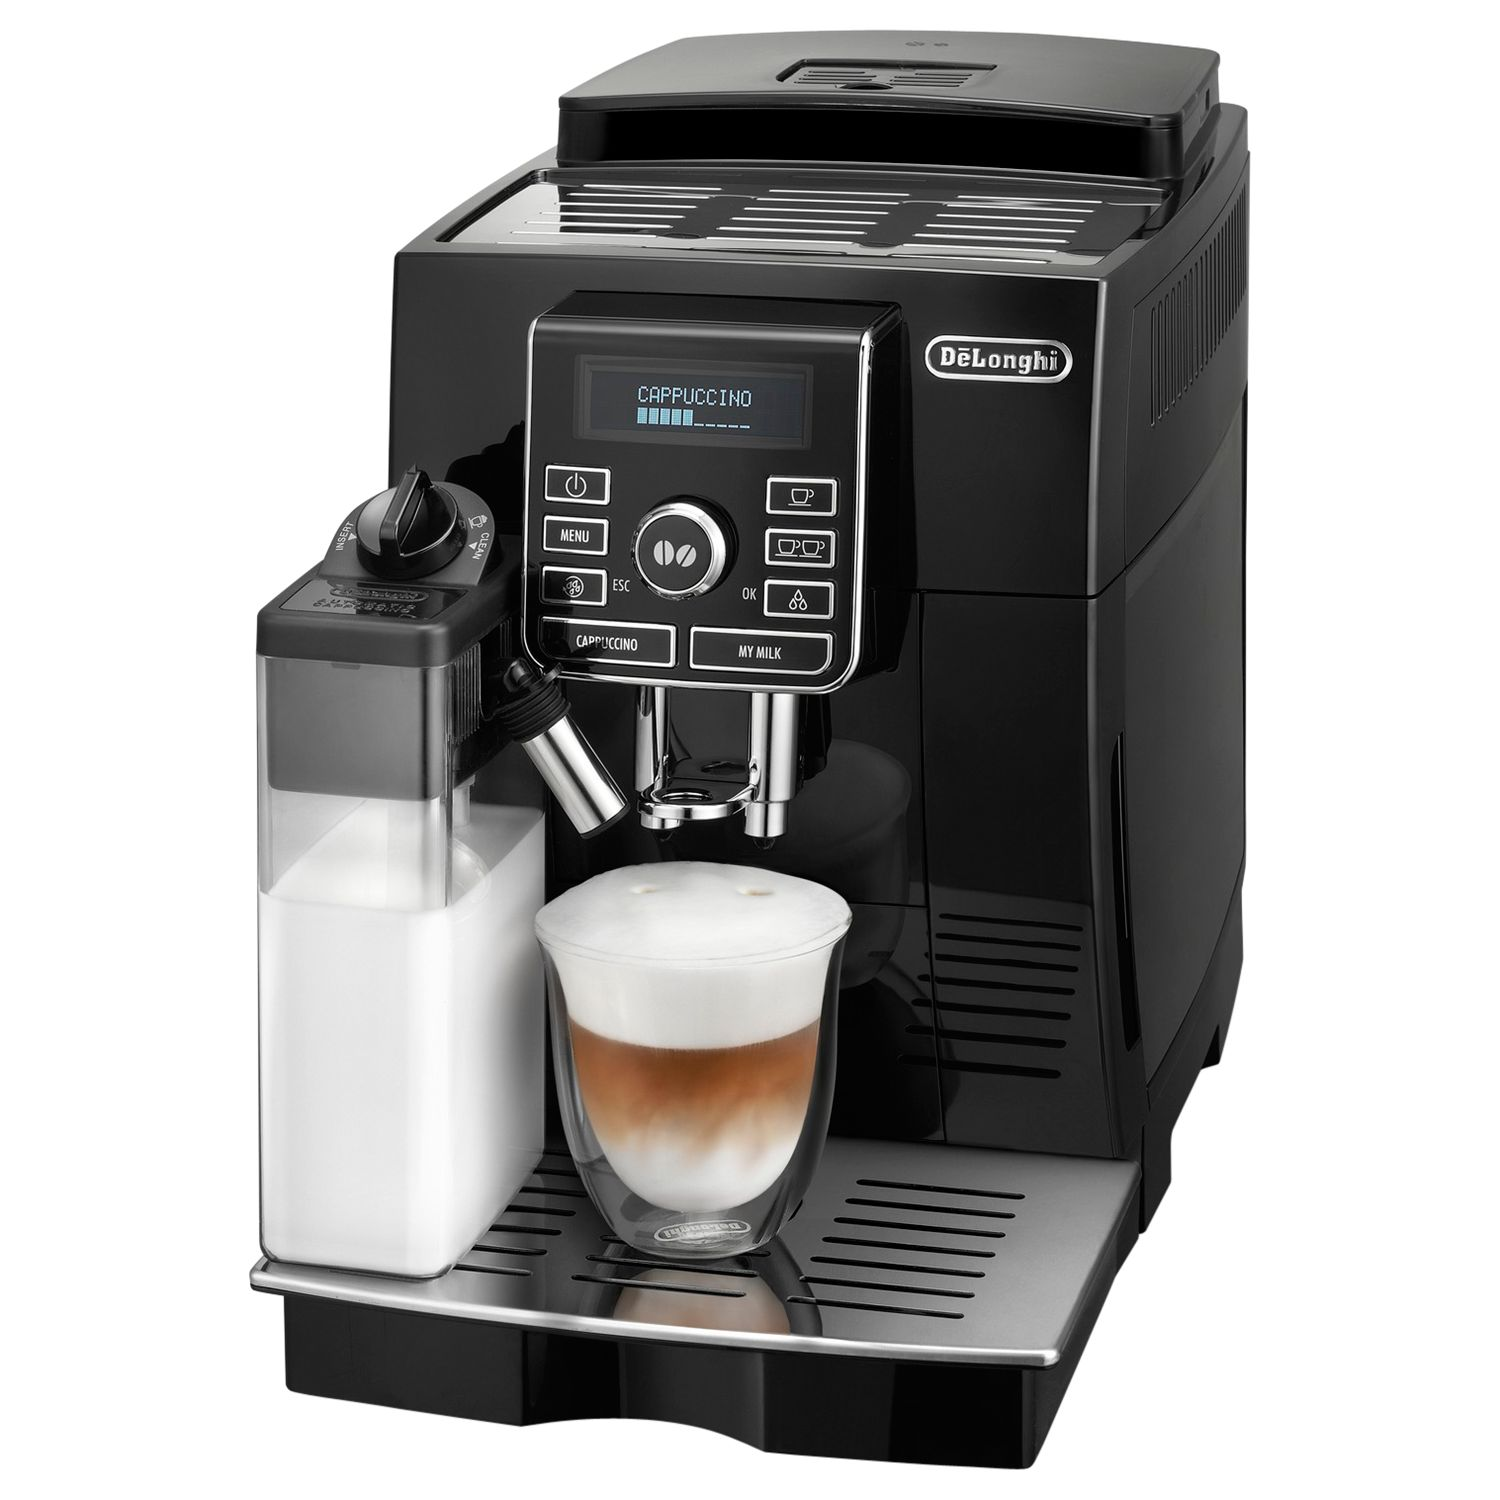 delonghi magnifica coffee maker compare prices at foundem. Black Bedroom Furniture Sets. Home Design Ideas